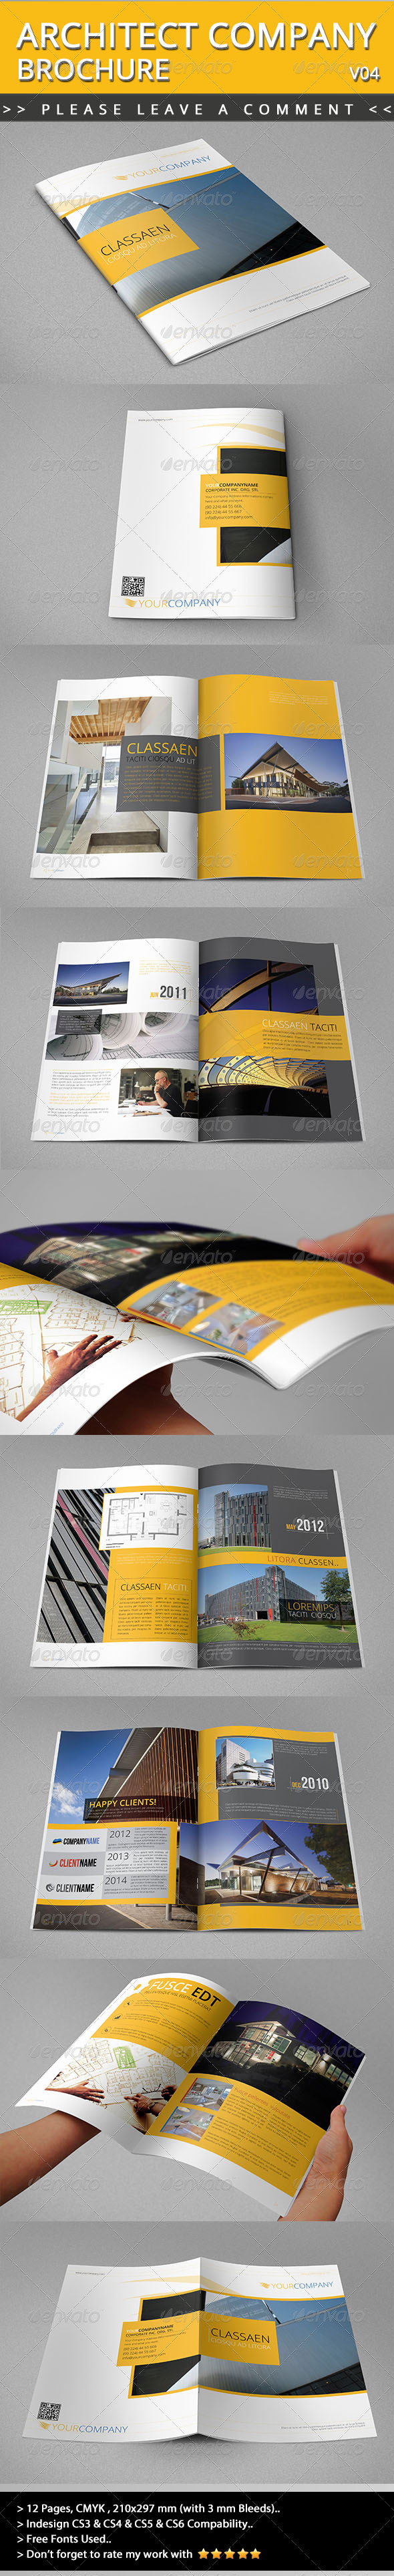 Architecture Brochure V04 - Corporate Brochures